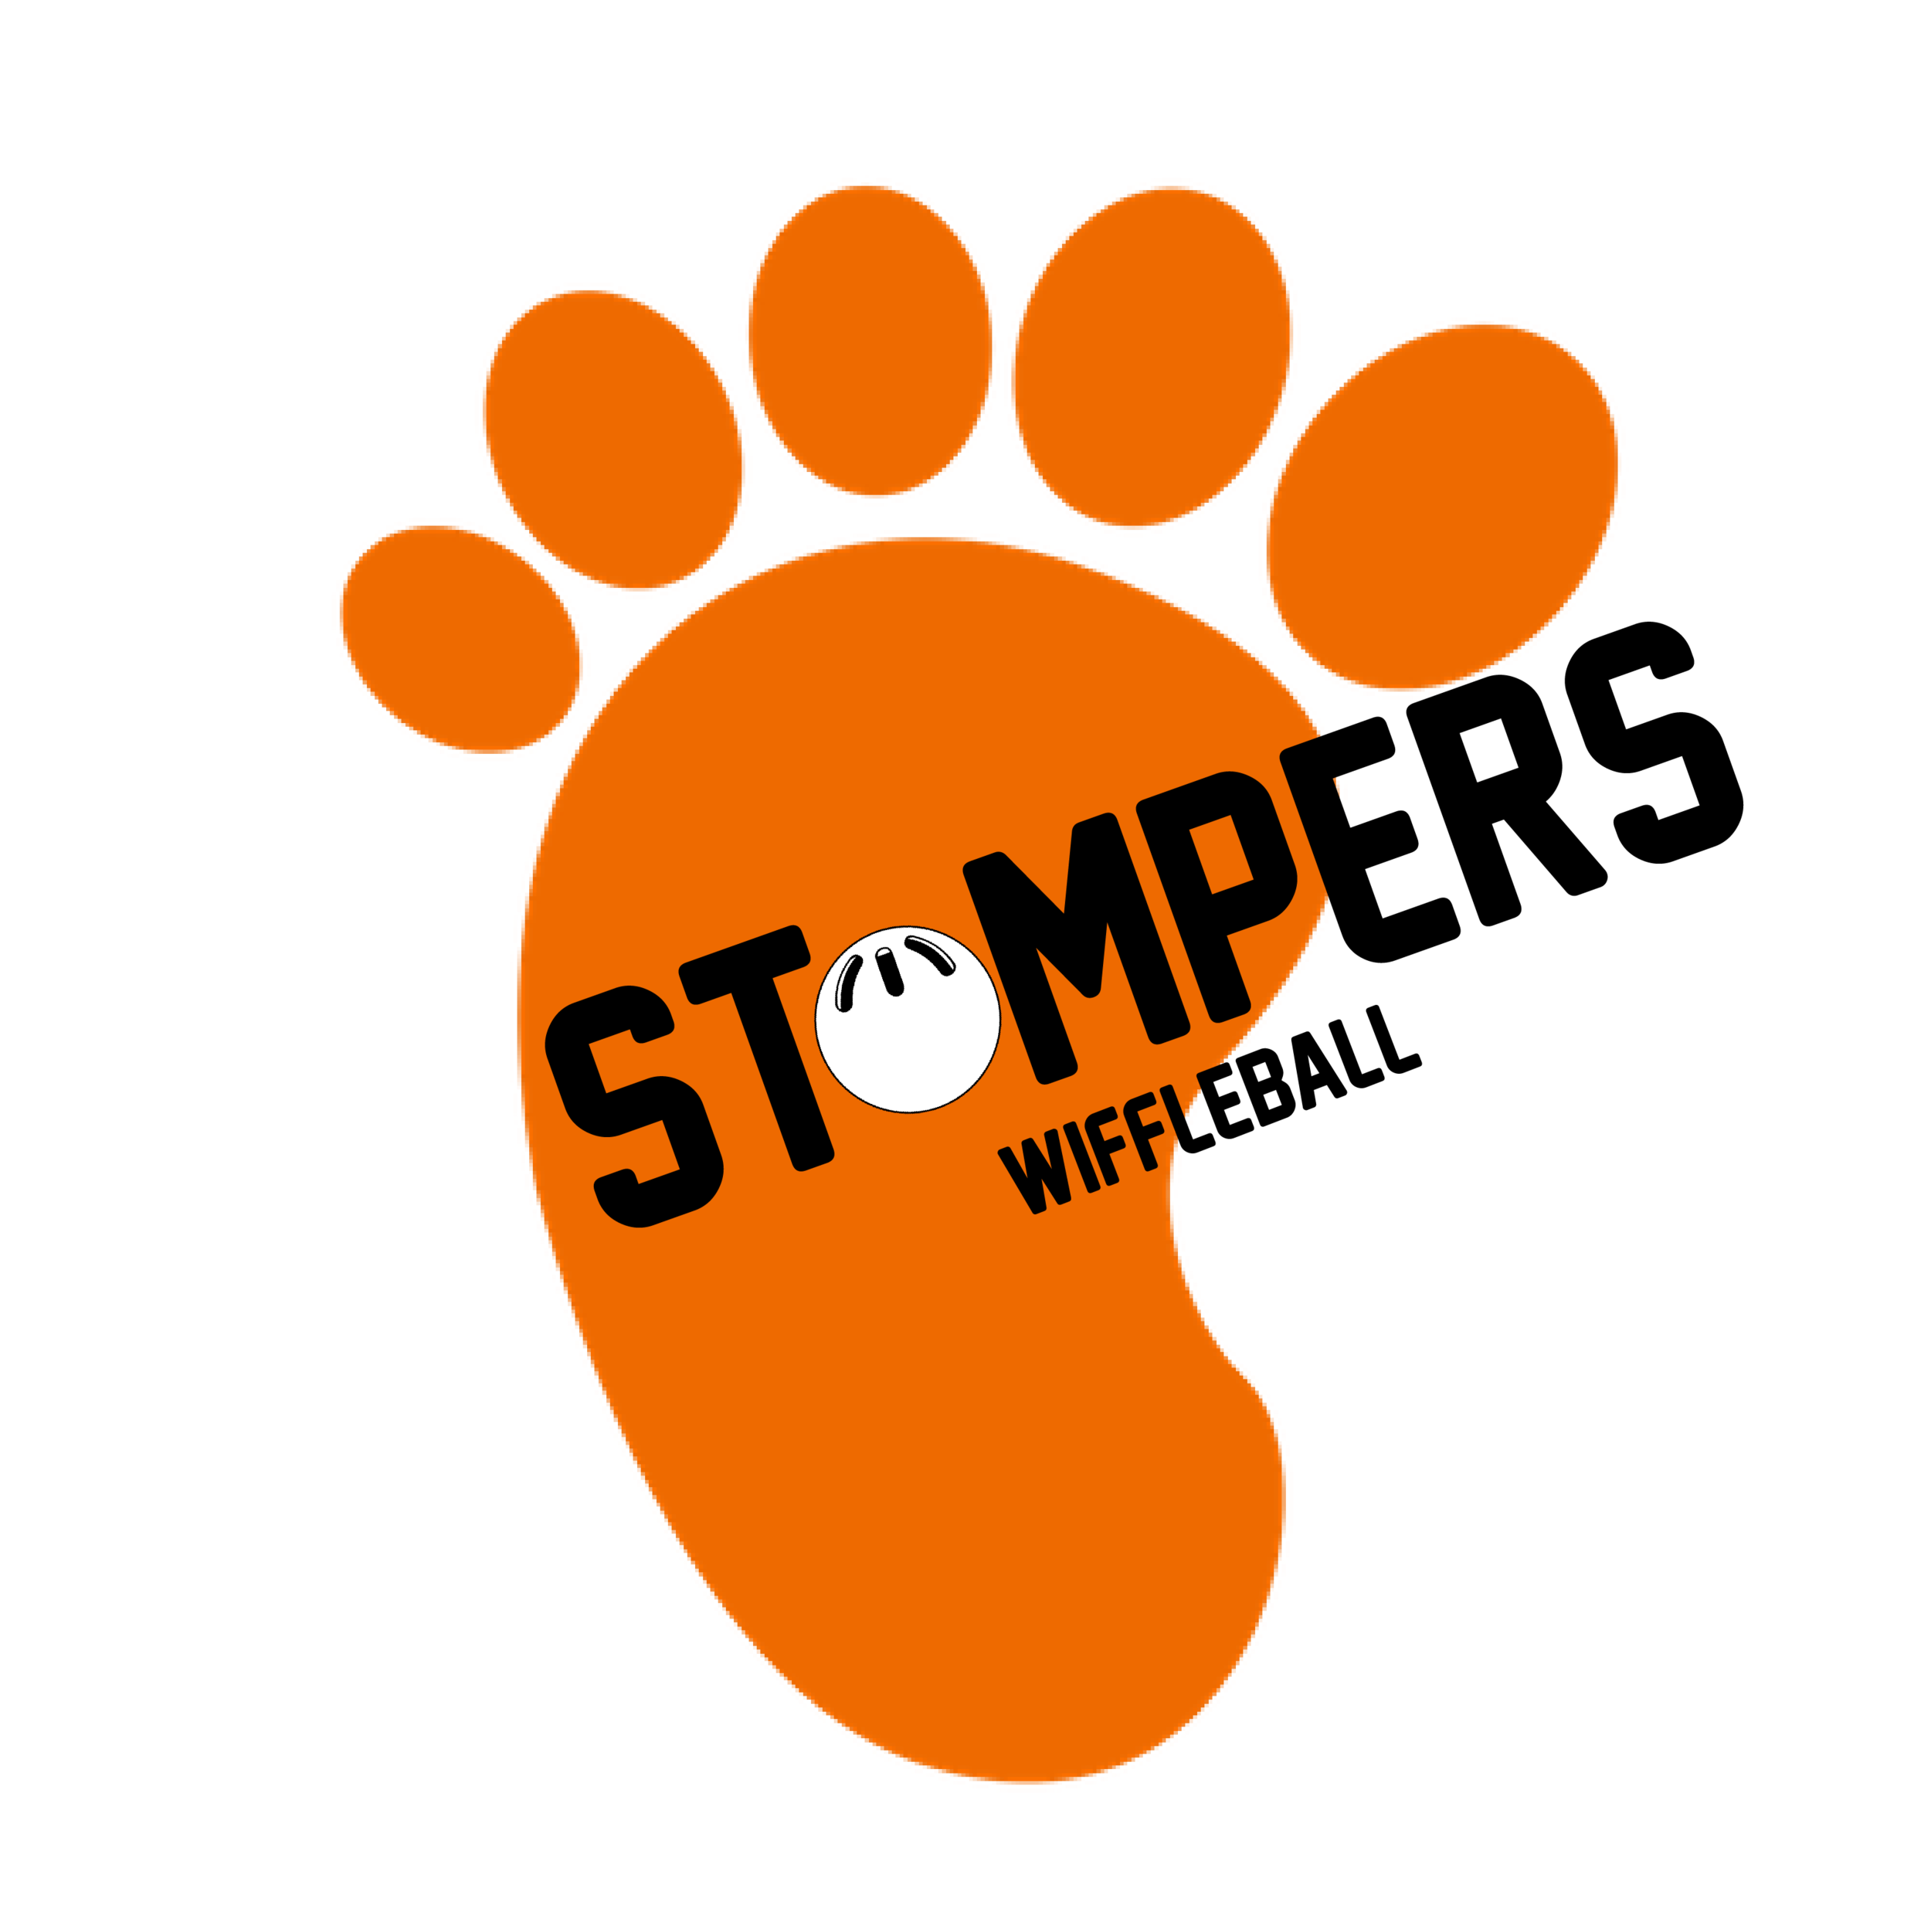 2018-01-28_working stompers logo (2).png